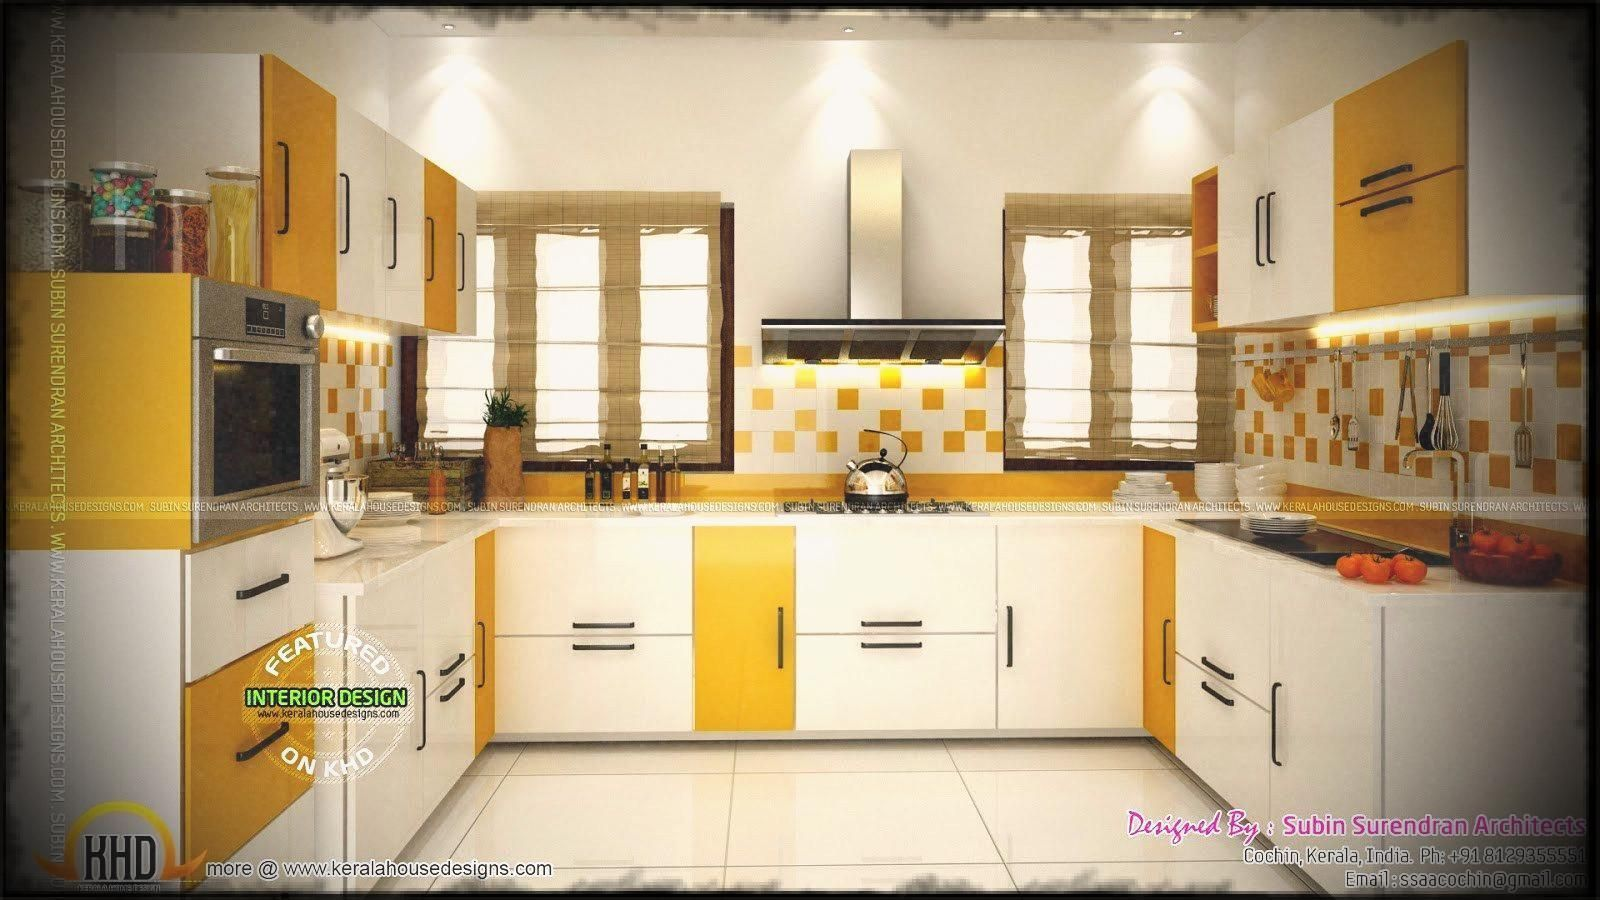 Modular Kitchen Design Catalogue Pdf Kitchen Kitchen Kitchendesign Smallkitchen Lightk Interior Design Kitchen Modern Kitchen Design Yellow Kitchen Designs